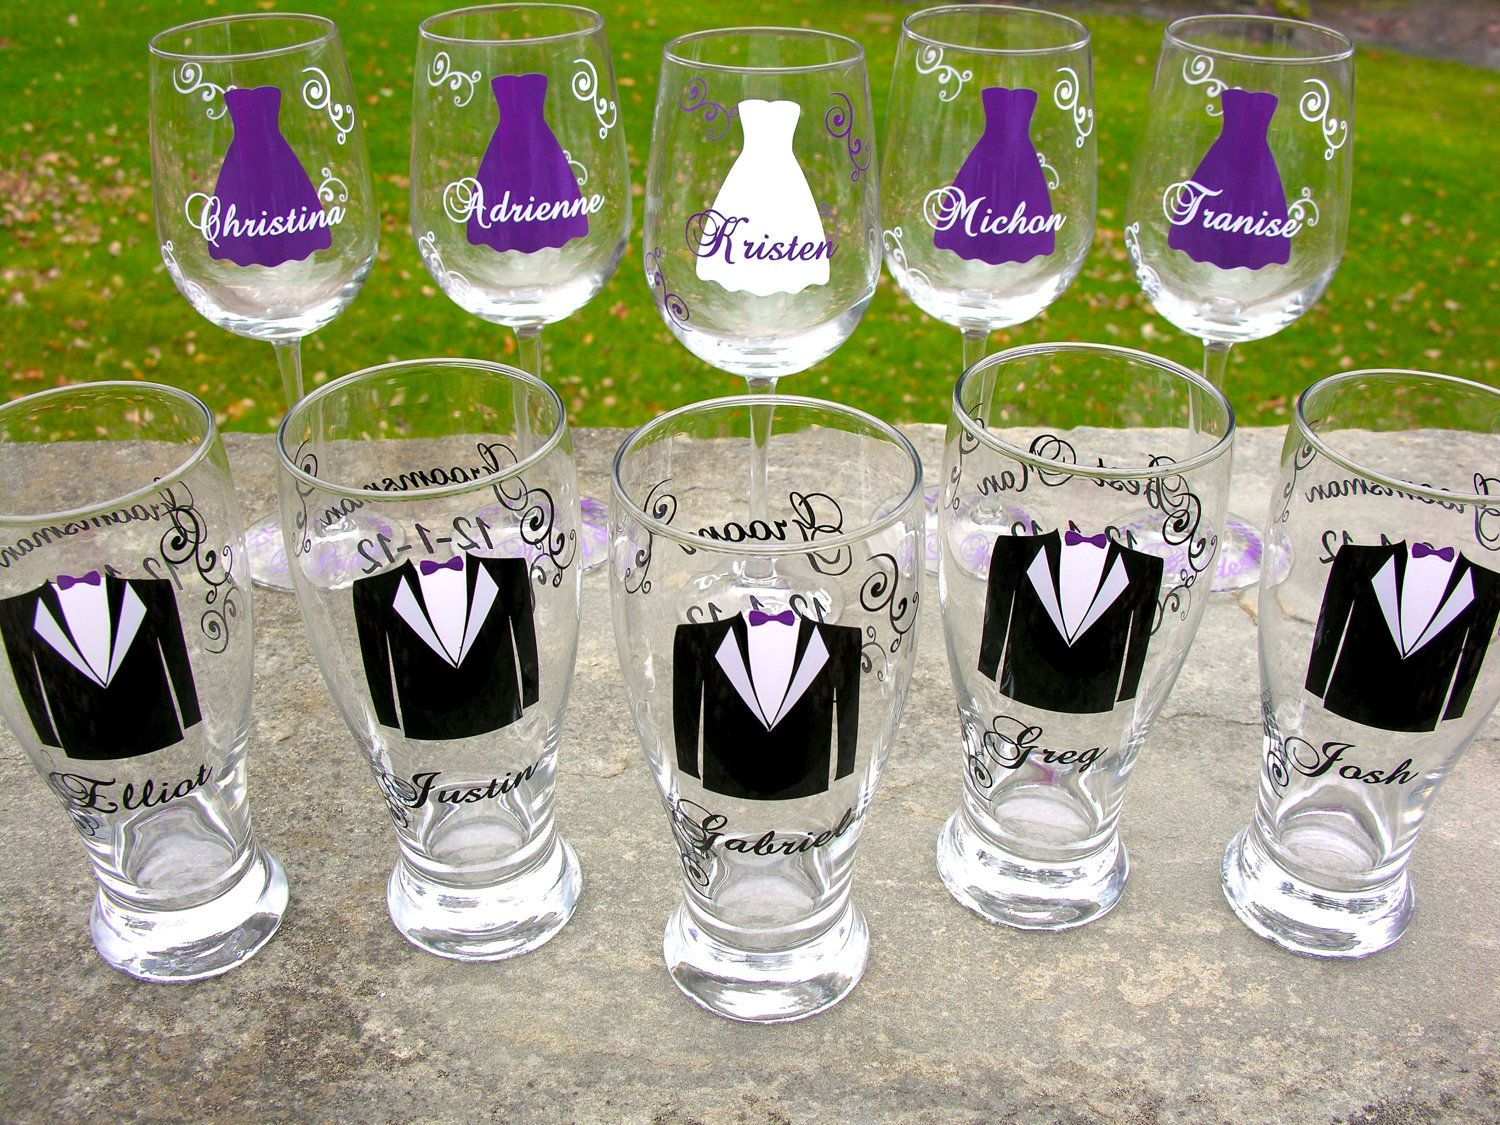 wedding wine glasses Wedding party glasses wine glasses and beer pilsner glasses Bridesmaids and Groomsman gifts Plum purple dress and tux glasses 1 glass